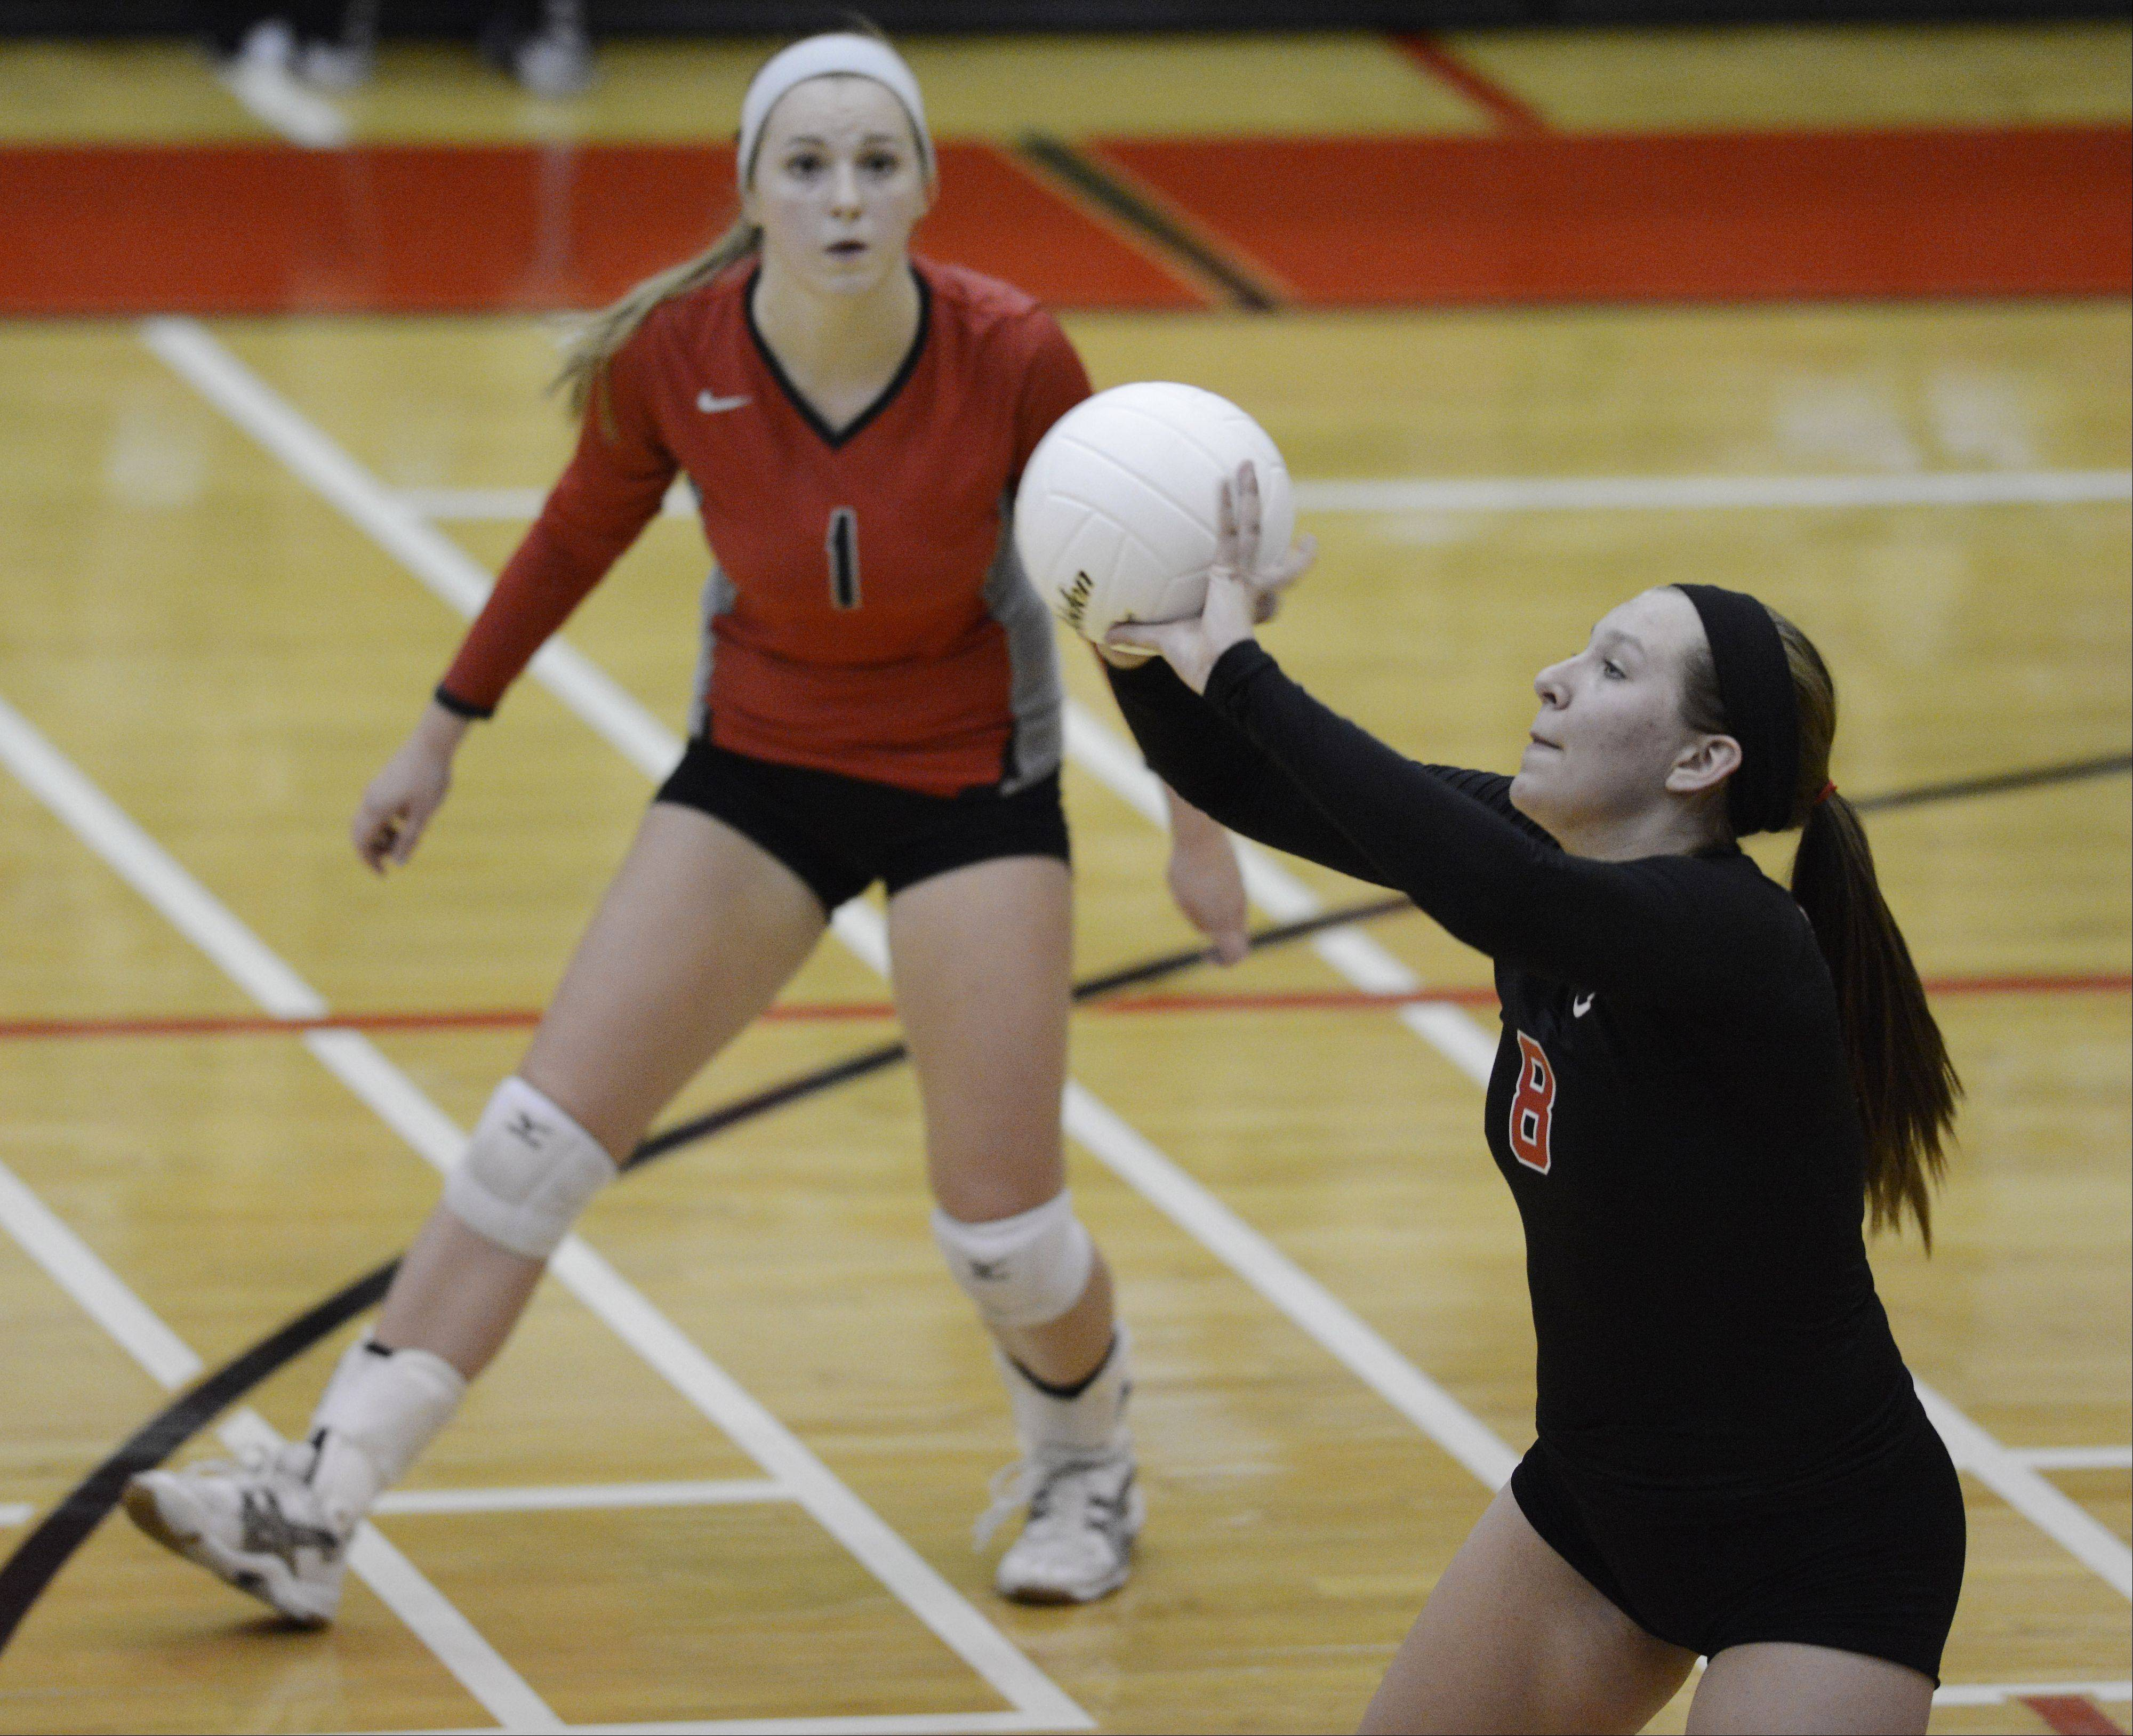 Palatine's Meg Angelaccio returns a serve as teammate Liz Keelty stands at the ready during Tuesday's match against Conant.